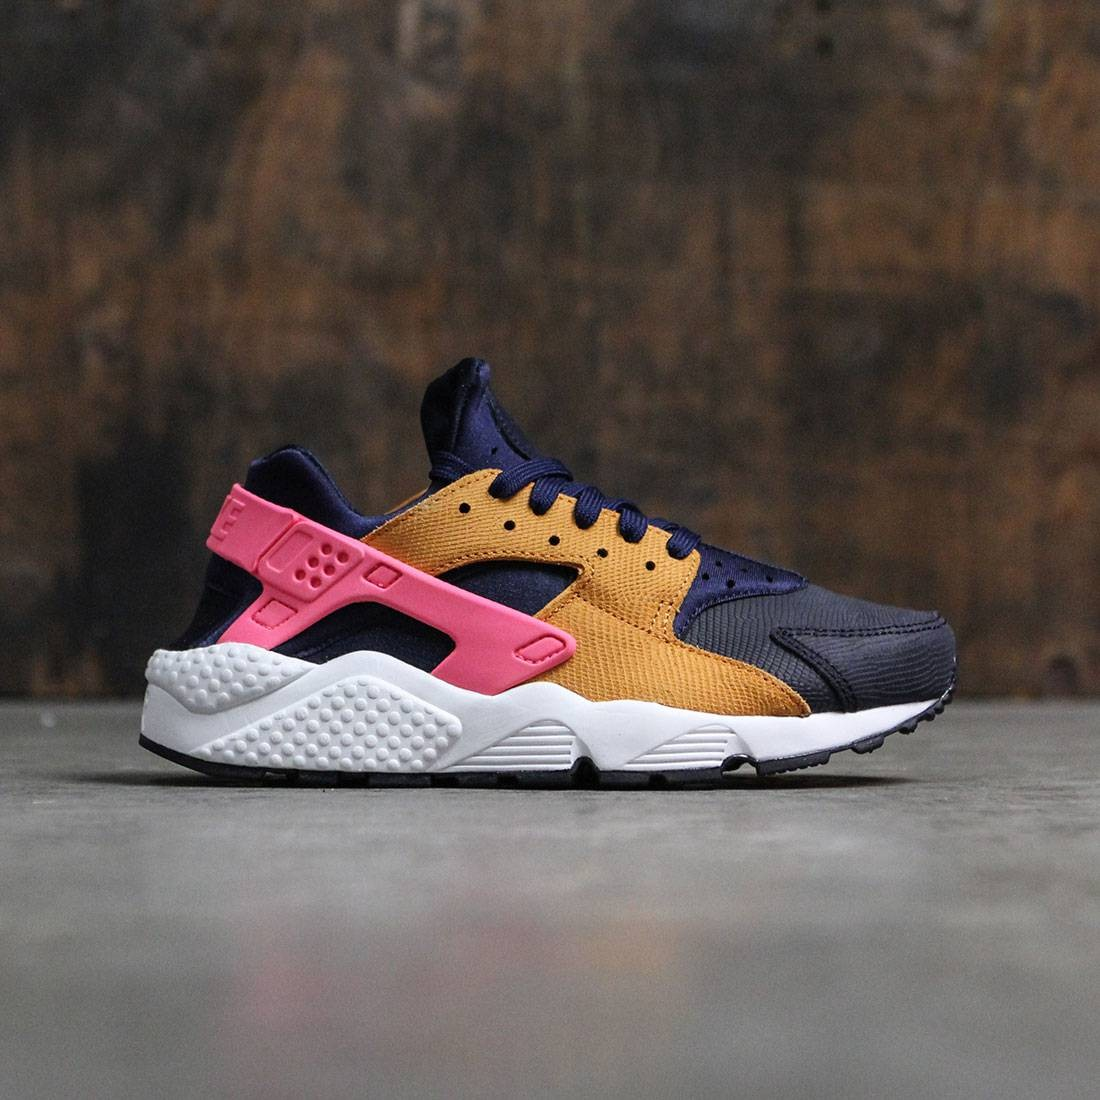 buy popular 27248 daf24 Nike Women Women S Nike Air Huarache Run Premium (obsidian    black-sunset-digital pink)